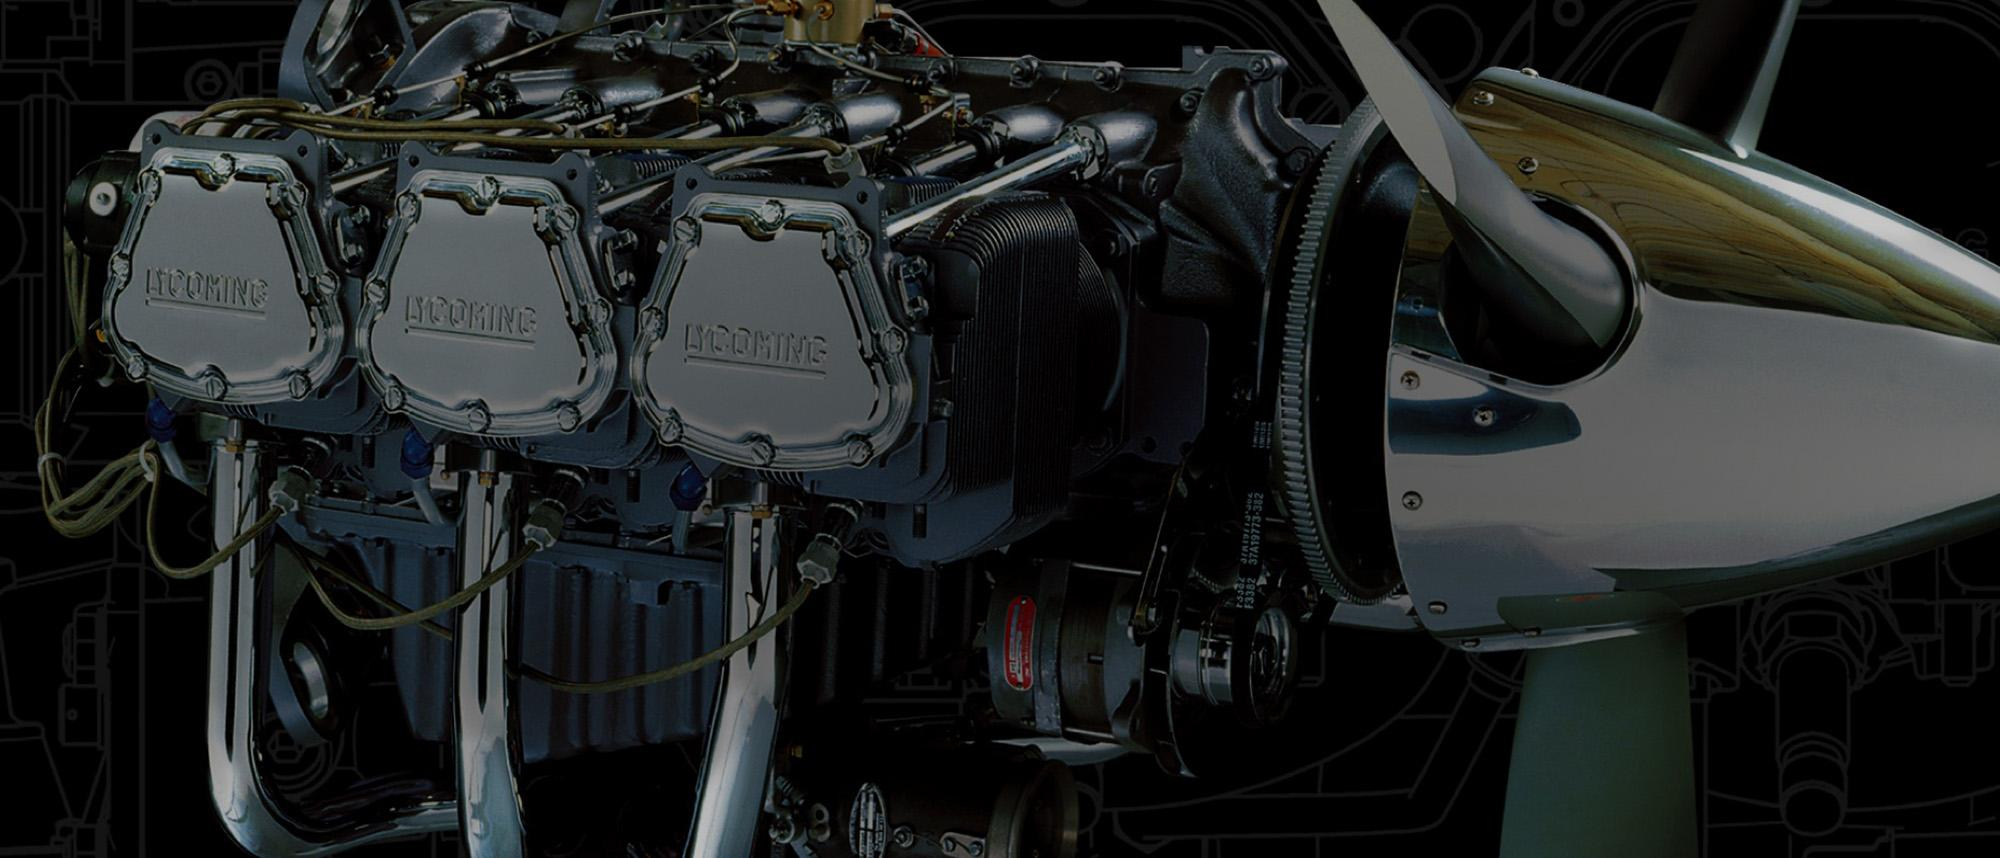 Lycoming Engines